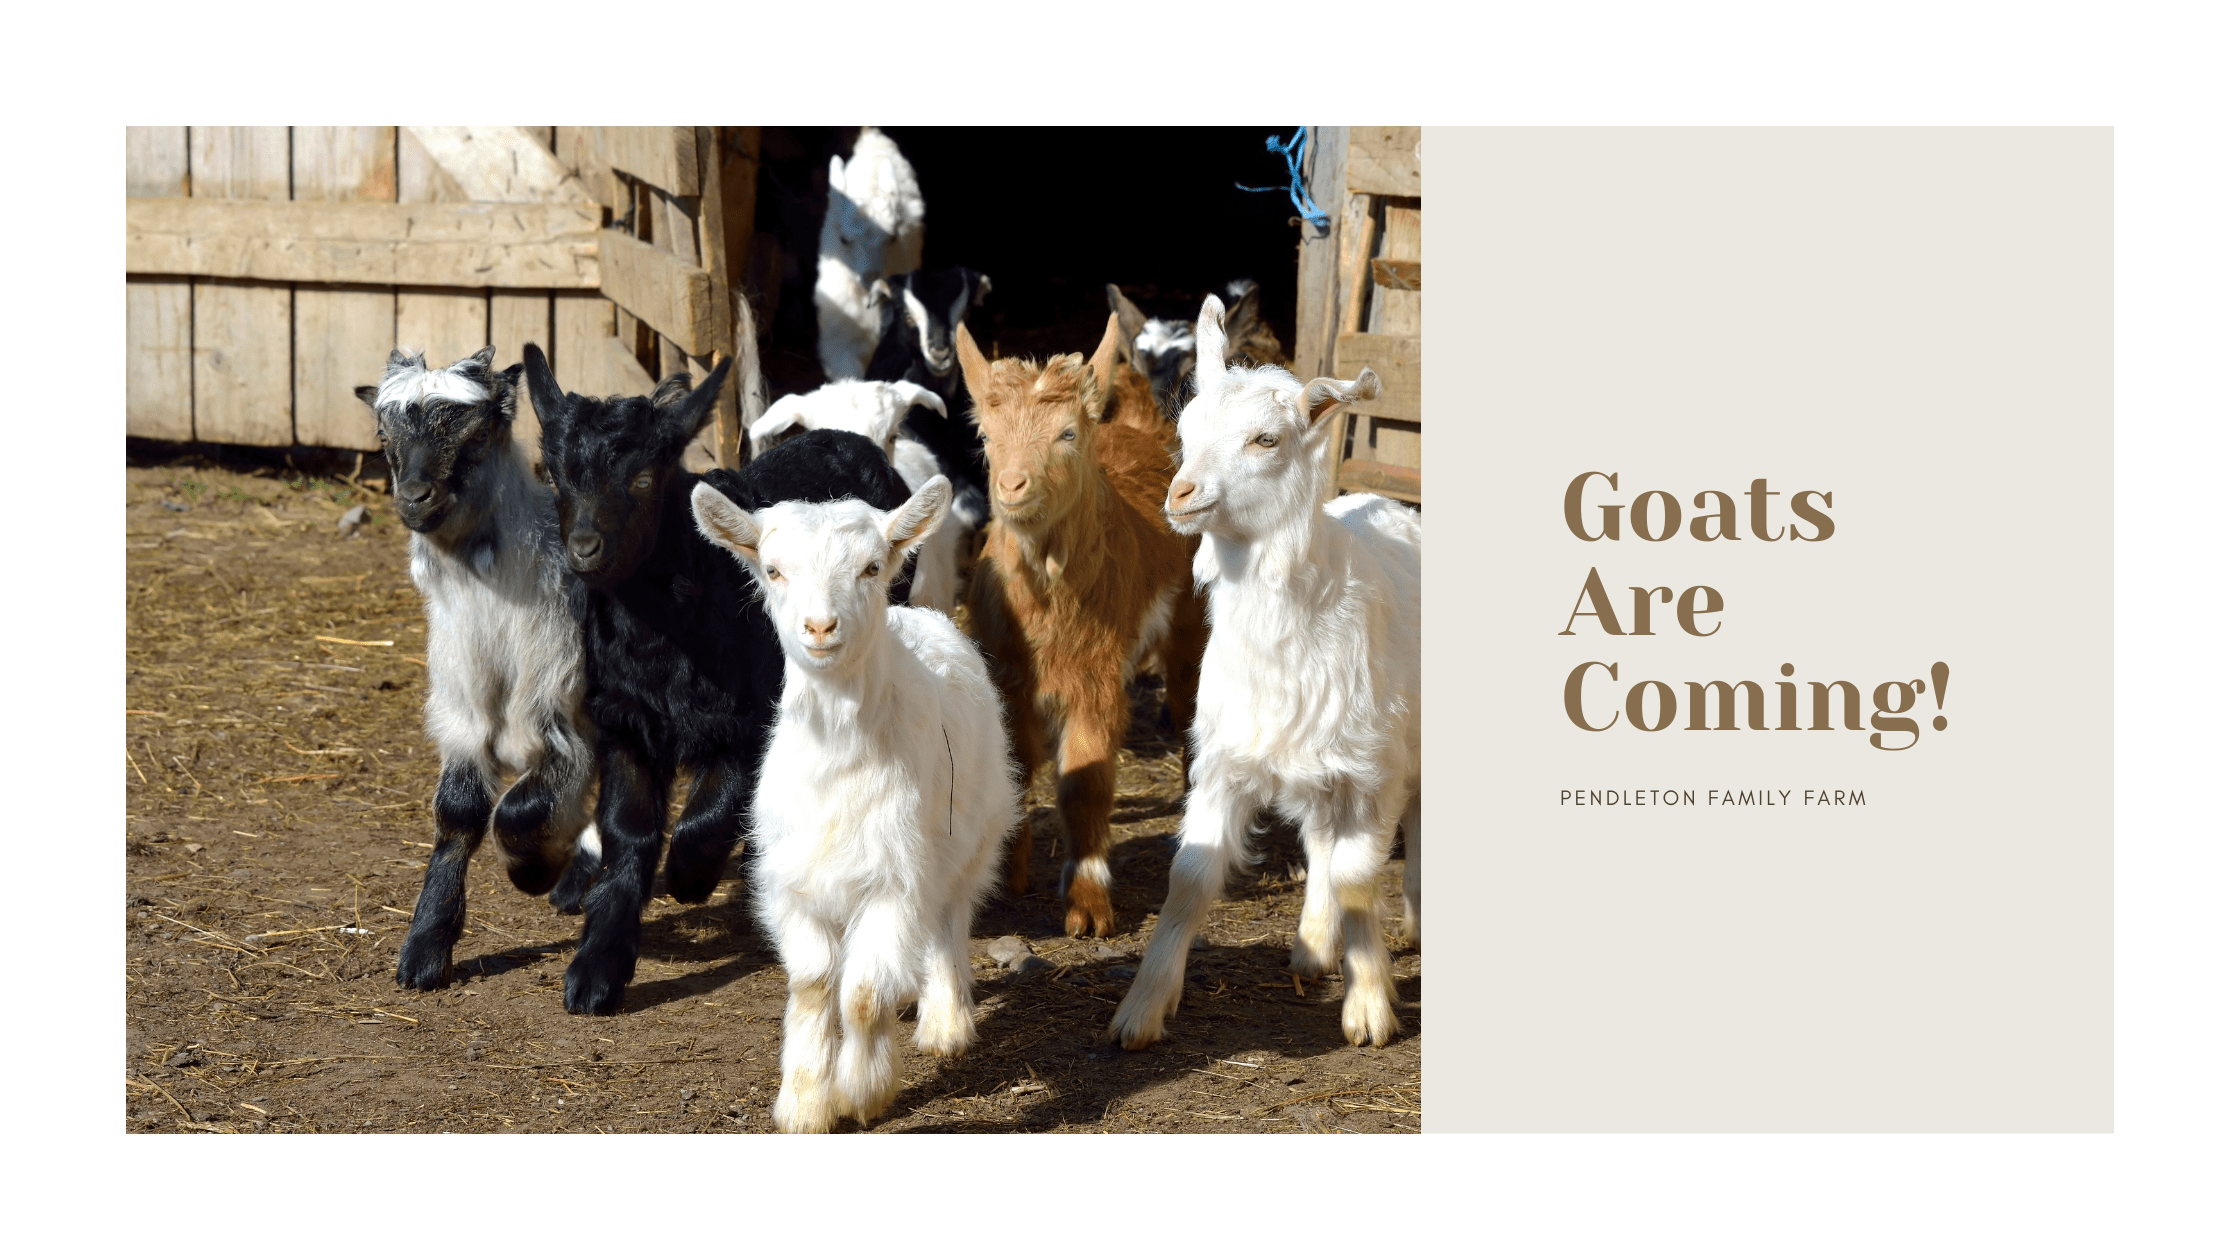 Goats are coming to the pendleton family farm